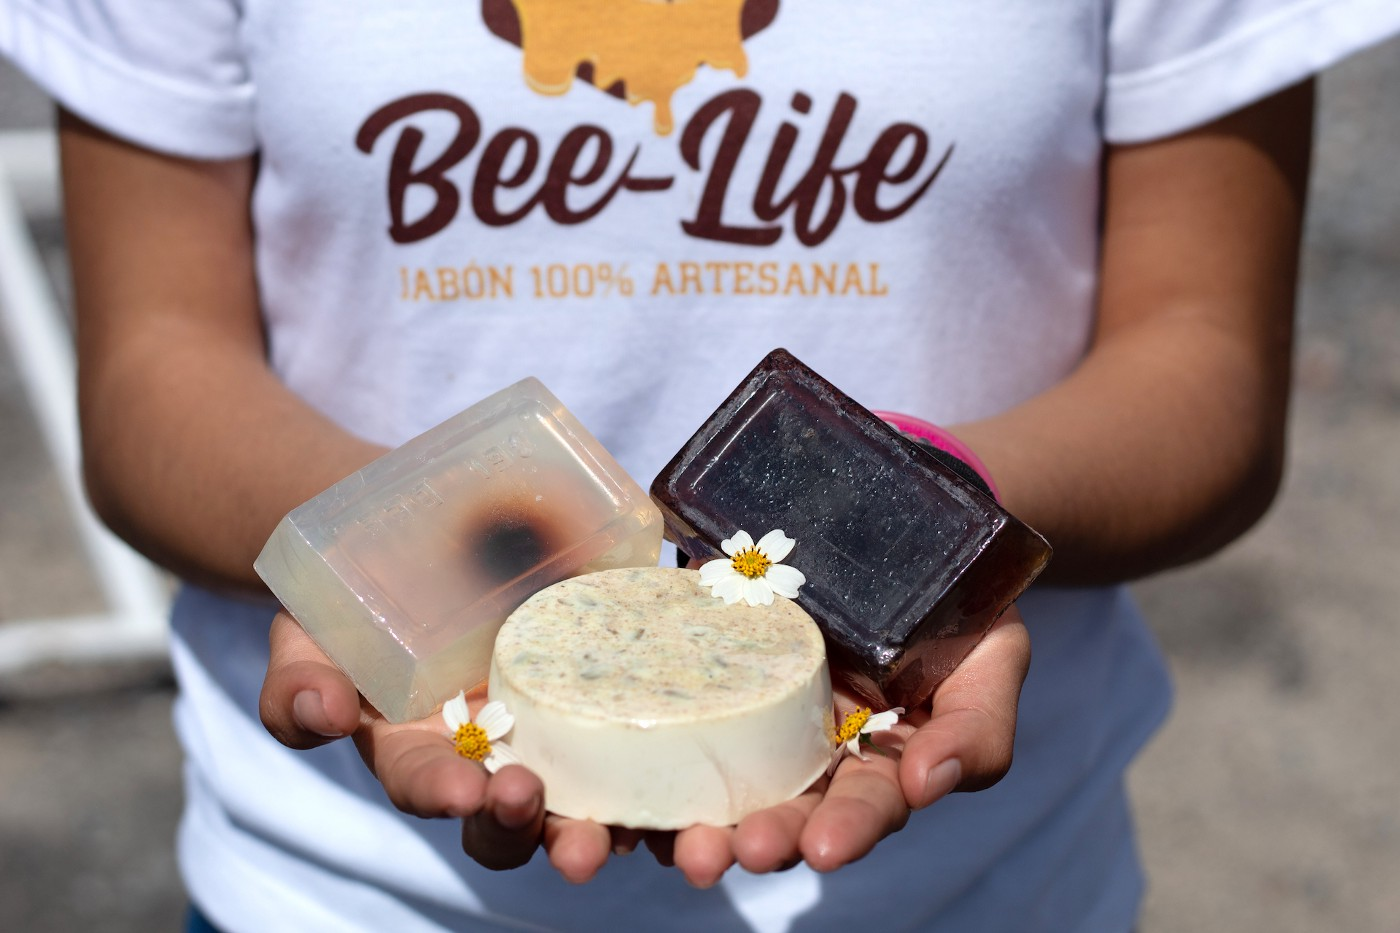 A teen girl holding Bee-Life Brand soaps in her hands.